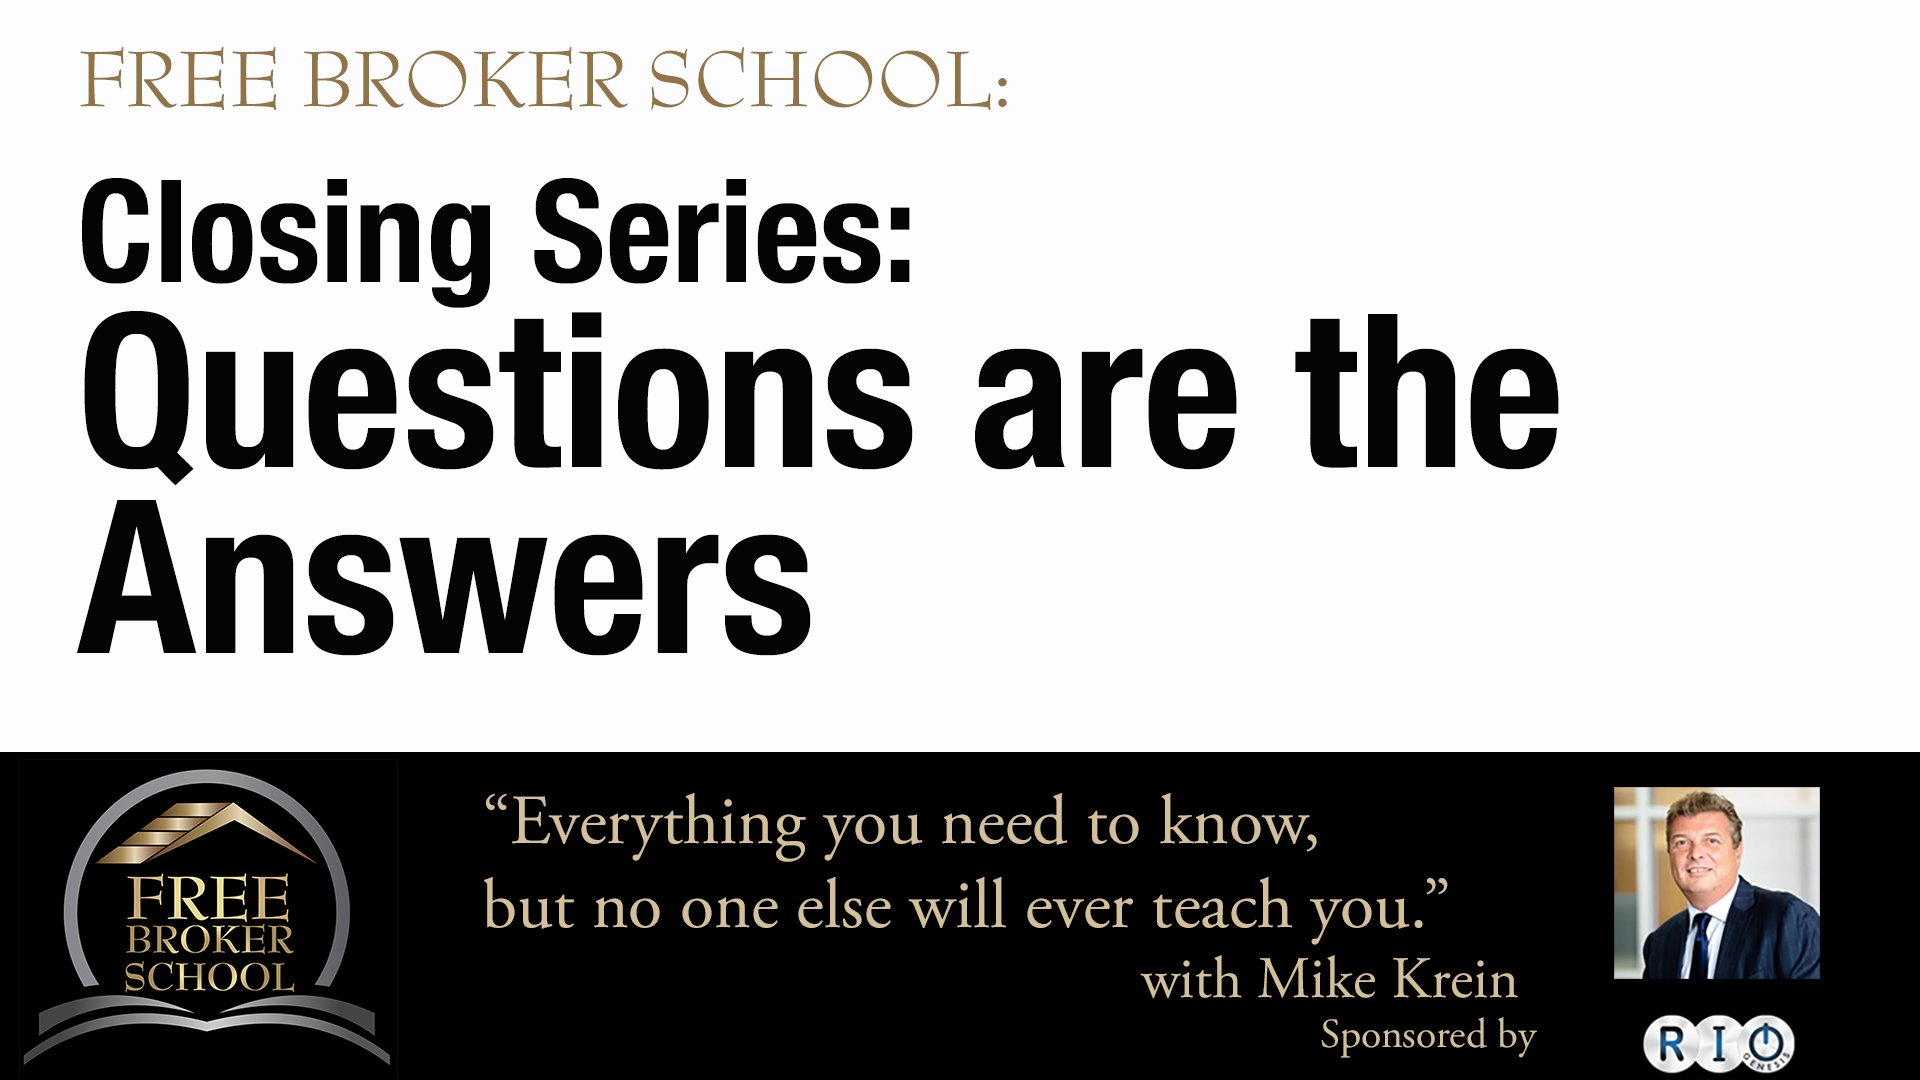 Free Broker School Sales Closing Series: Questions are the Answers